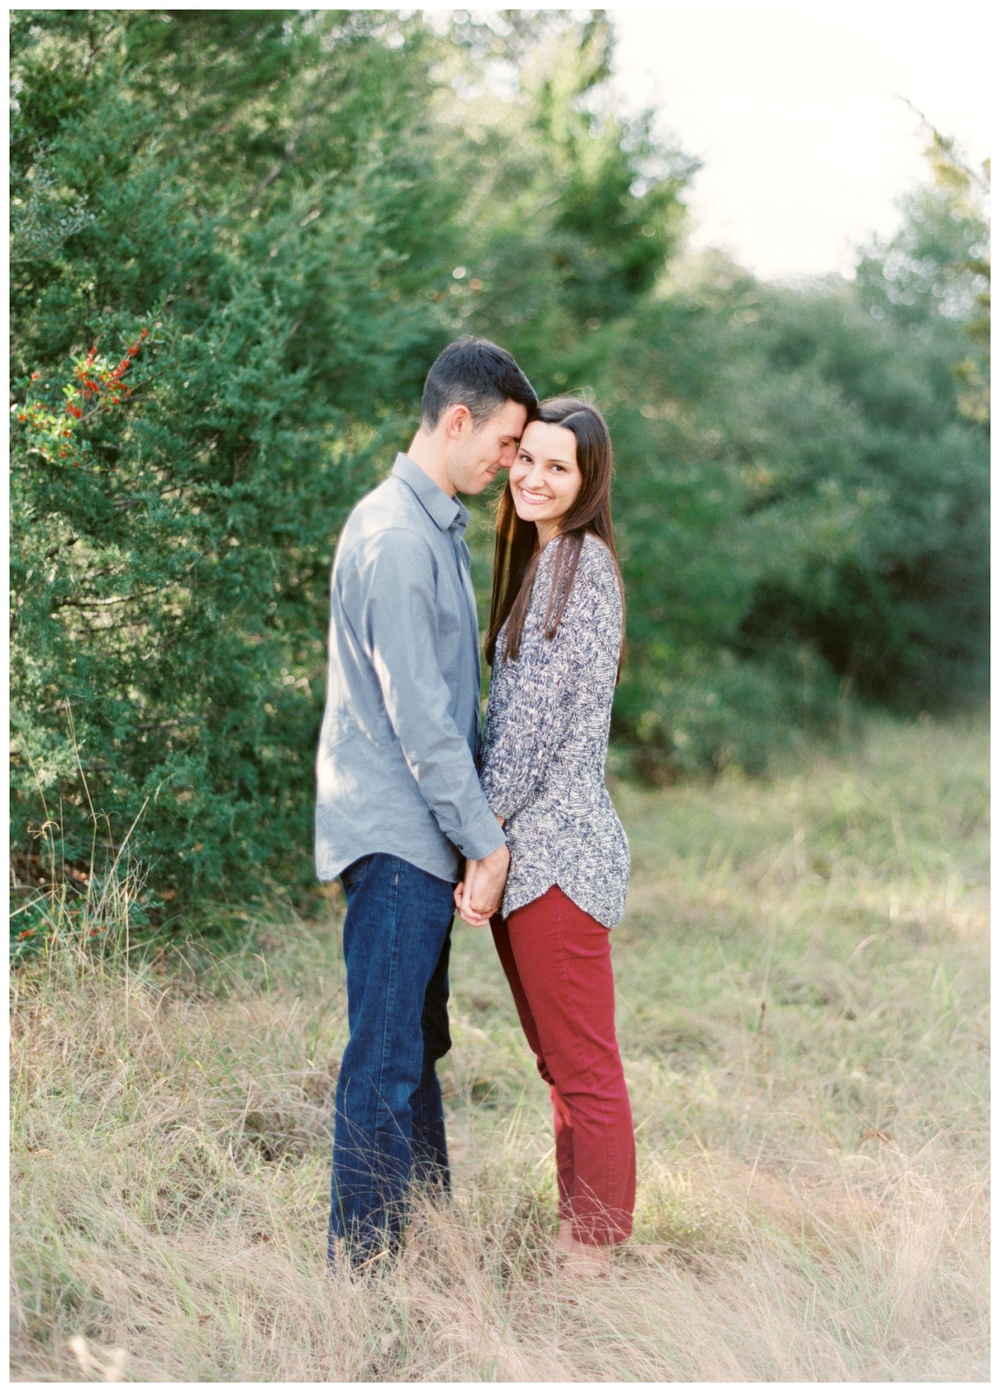 Sarah Best Photography - Brittany & Jonathan's Engagements-184_STP.jpg